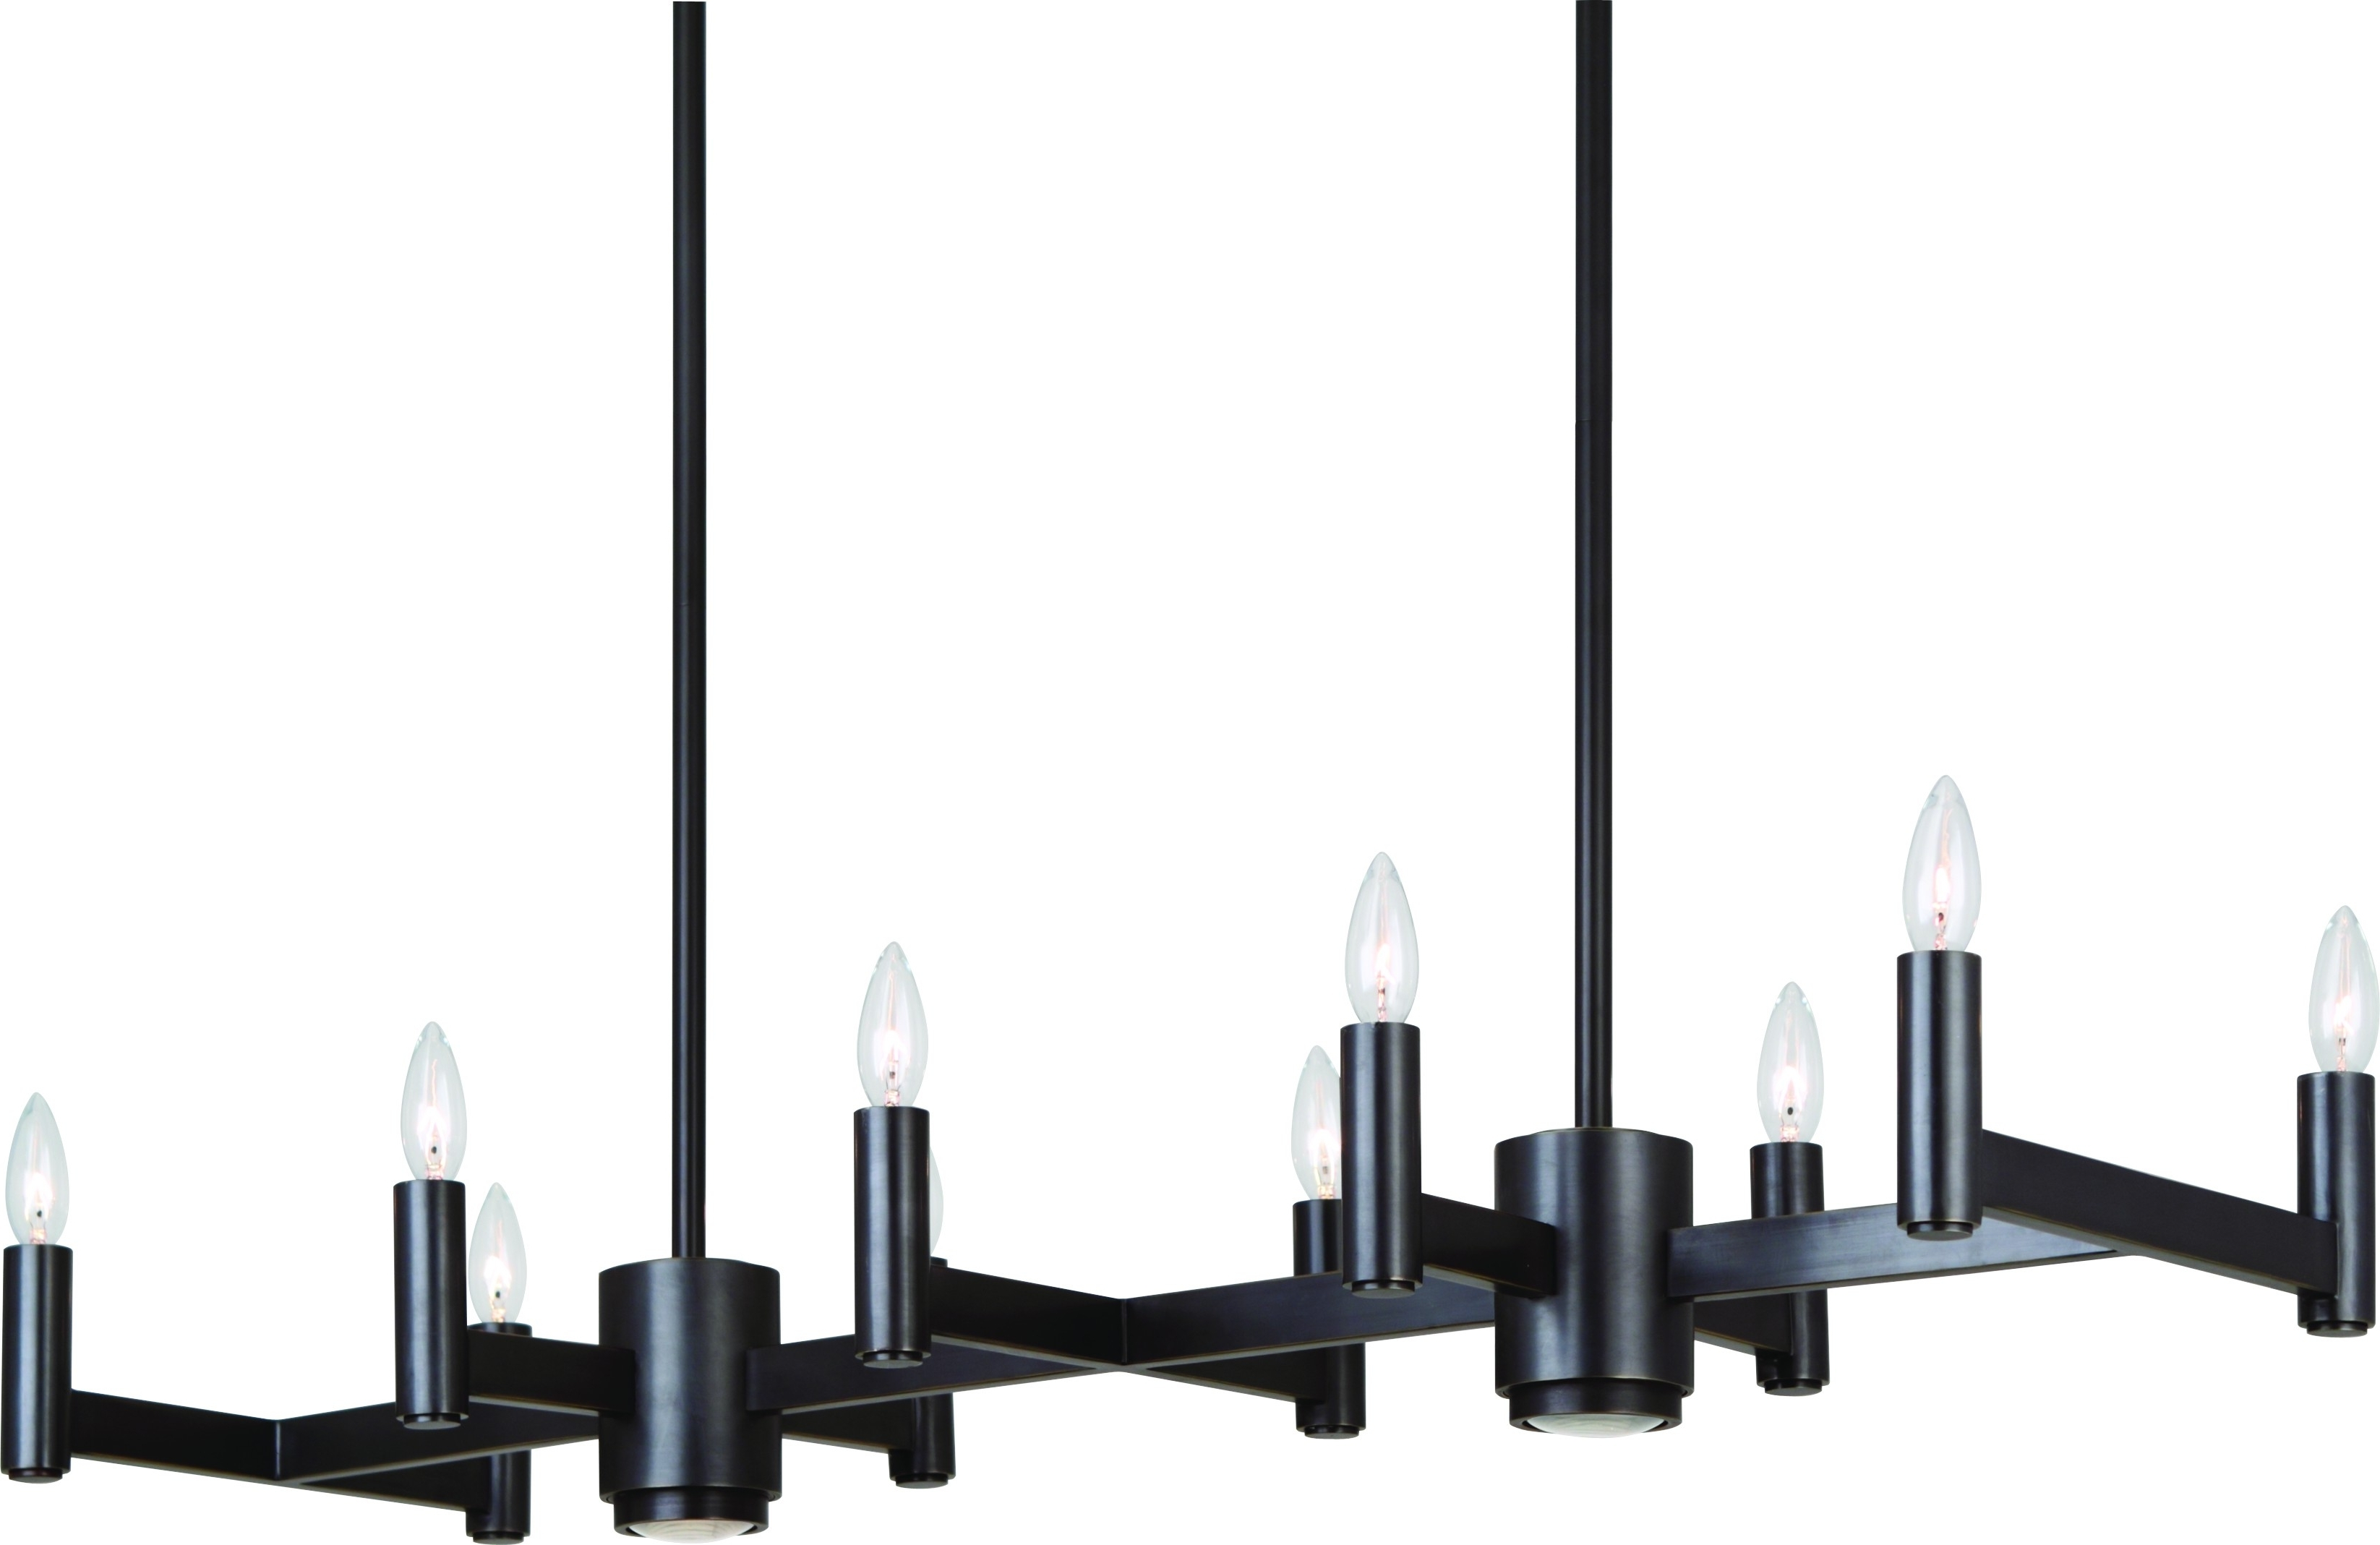 Hanging Rectangular Modern Black Wrought Iron Chandeliers With Lamp In Most Recently Released Modern Black Chandelier (View 11 of 15)